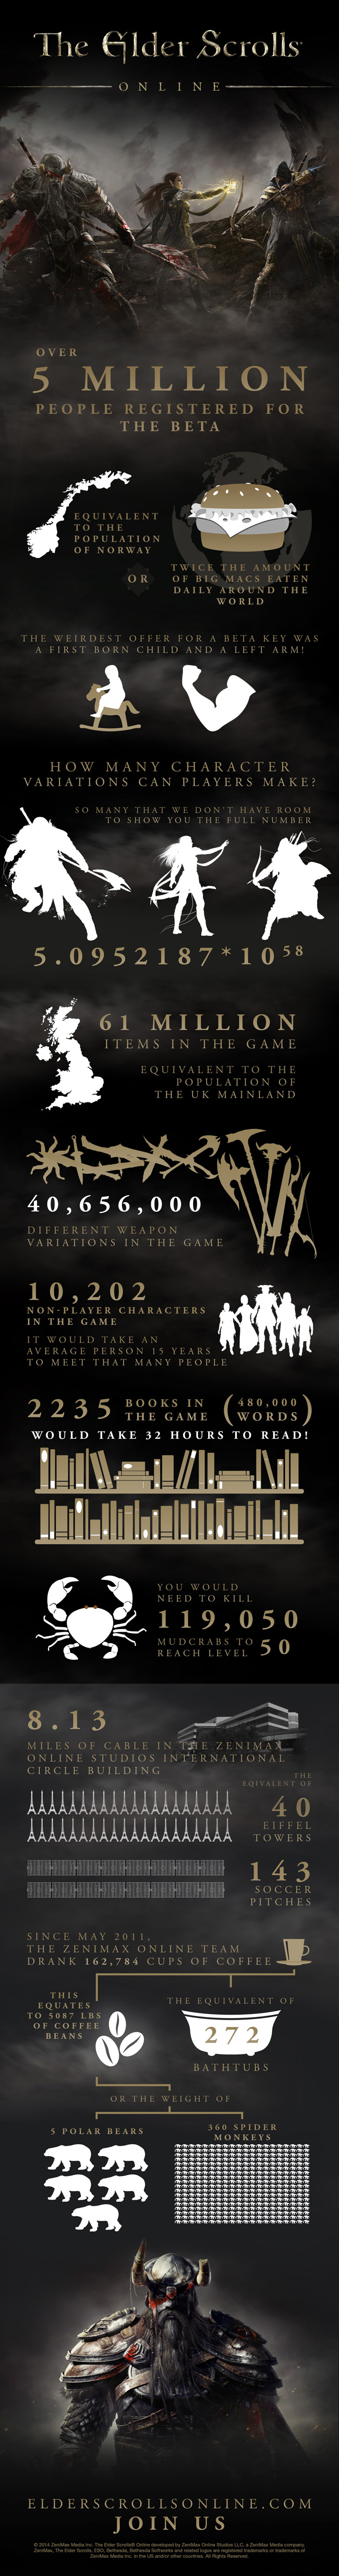 The Elder Scrolls Online Infographic